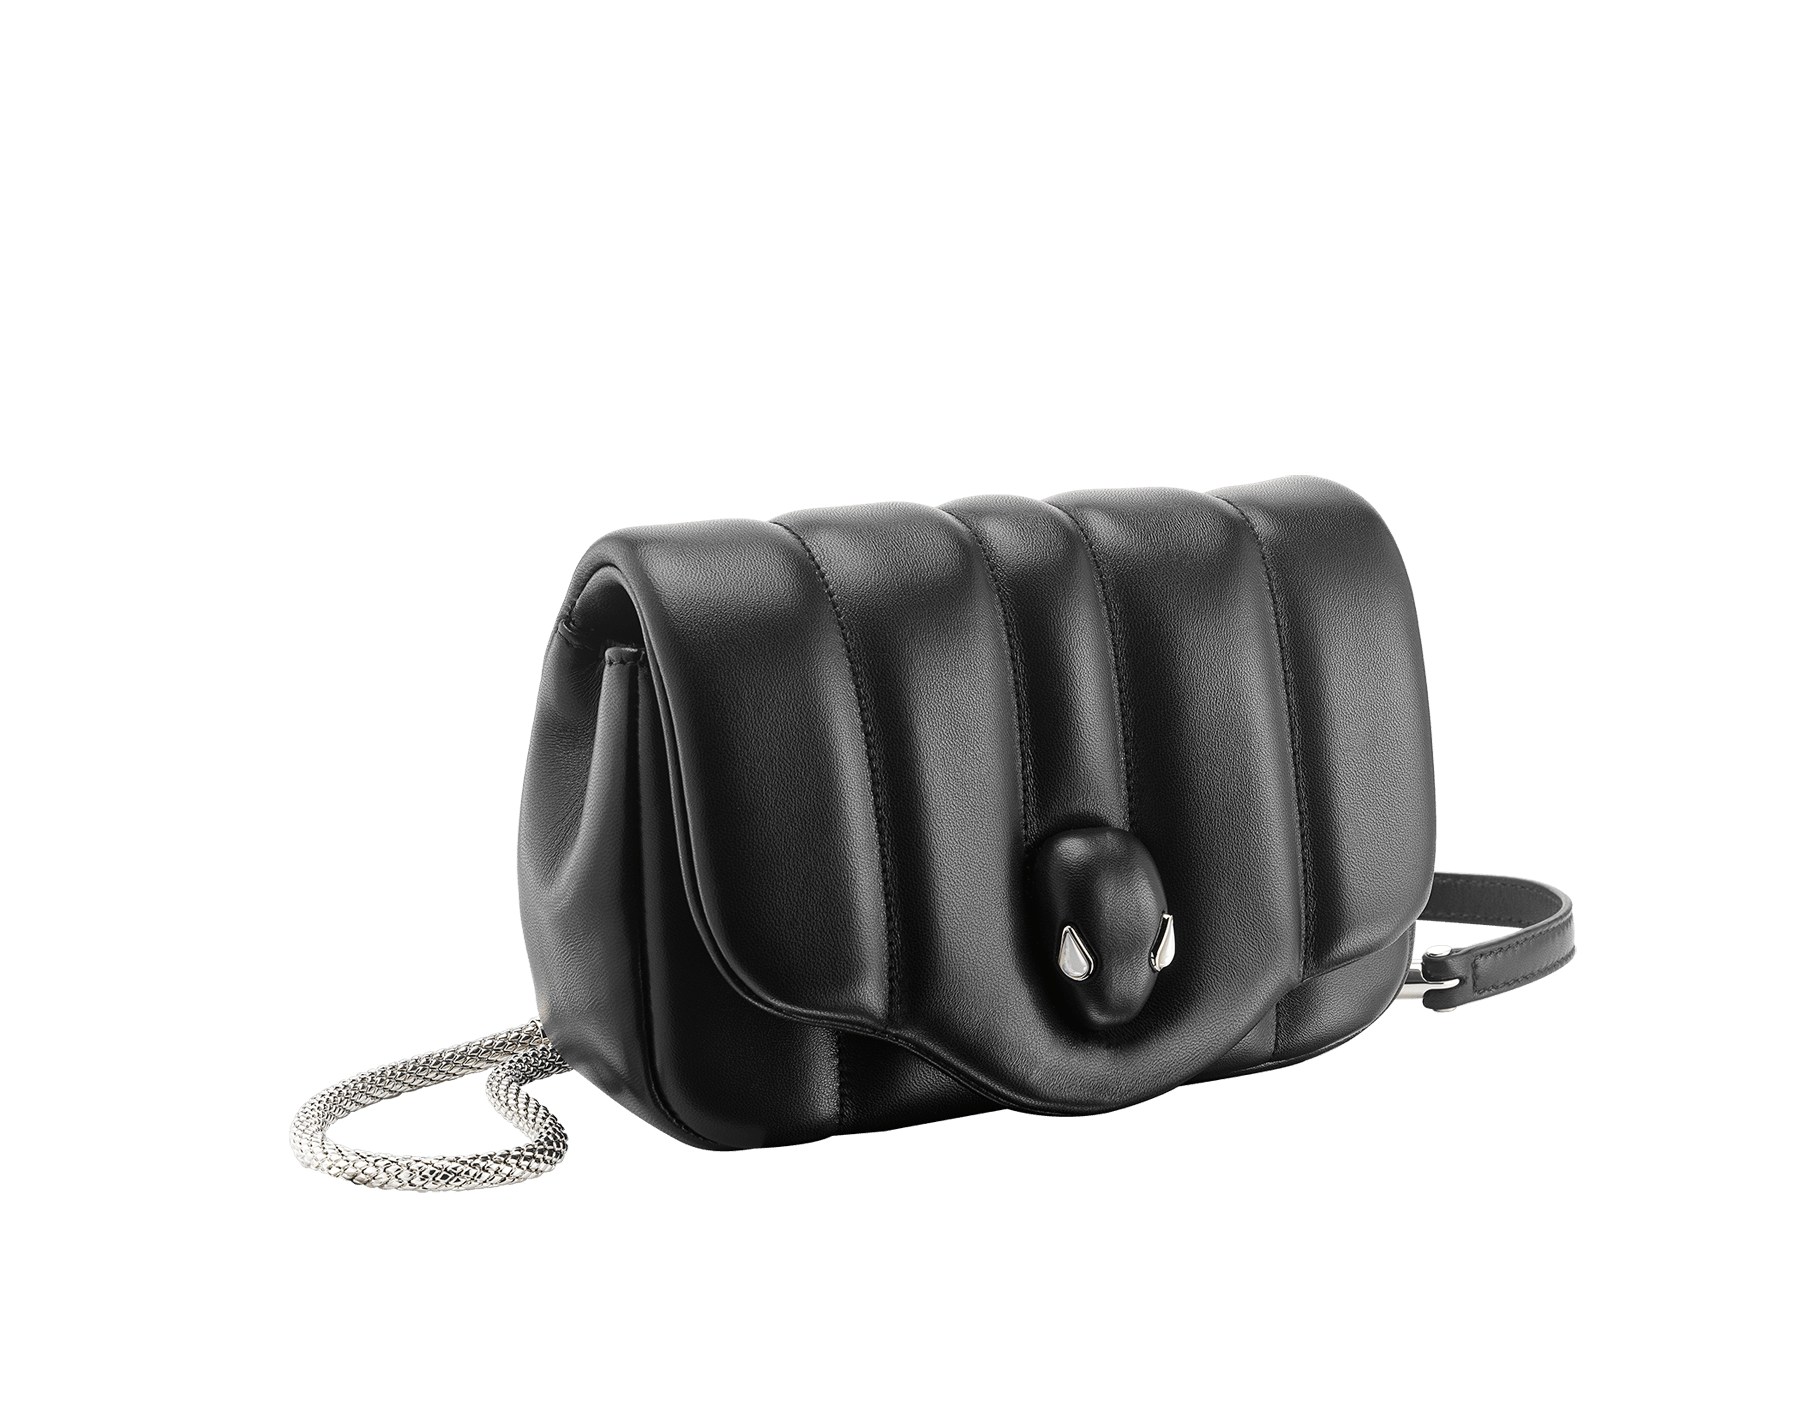 """Ambush x Bvlgari"" belt bag in black nappa leather. New Serpenti head closure in palladium plated brass dressed with black nappa leather, finished with seductive mother of pearl eyes. Limited edition. 290348 image 2"